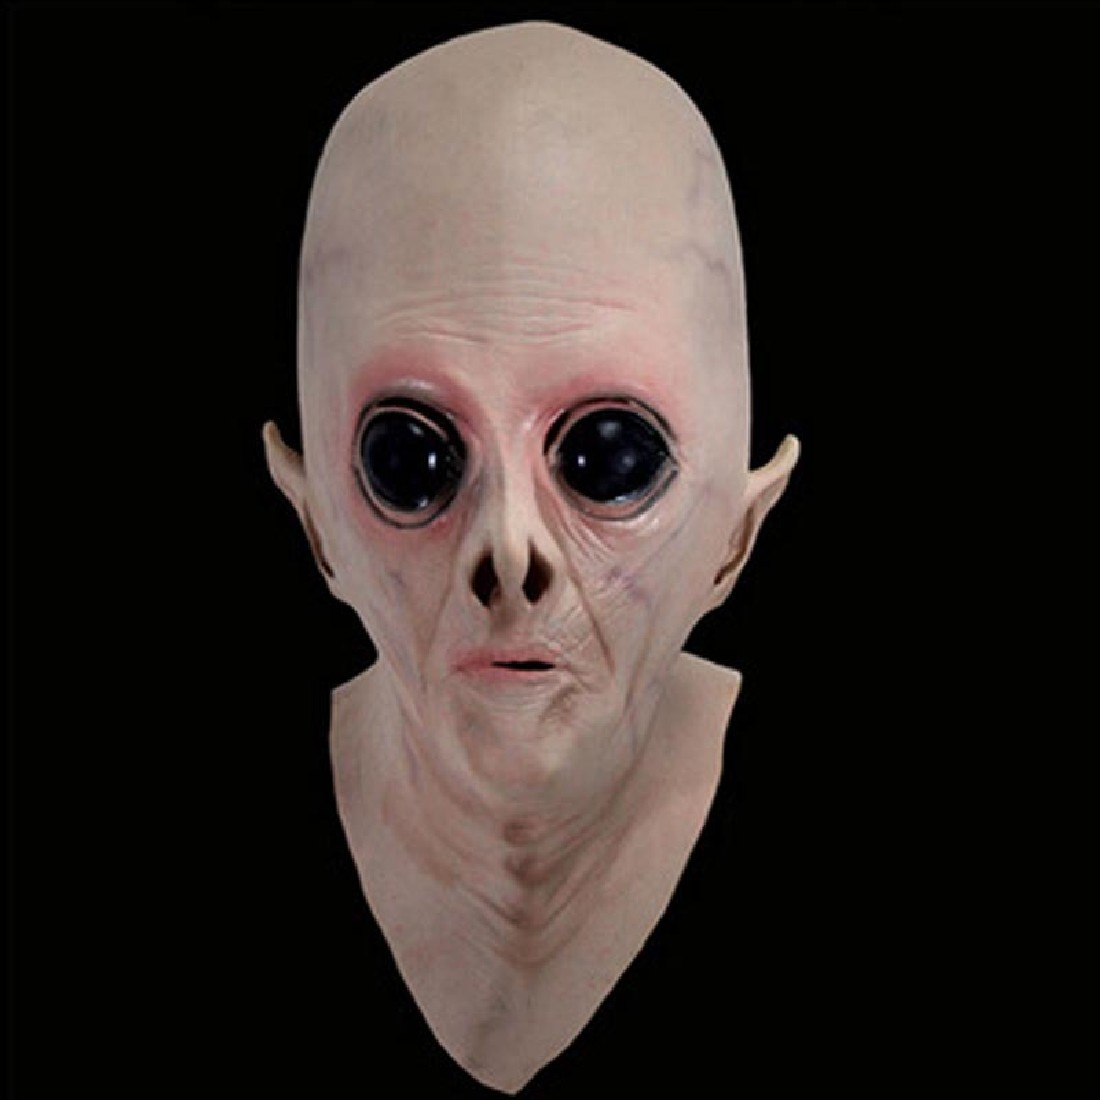 Online Get Cheap Scary Silicone Masks -Aliexpress.com | Alibaba Group